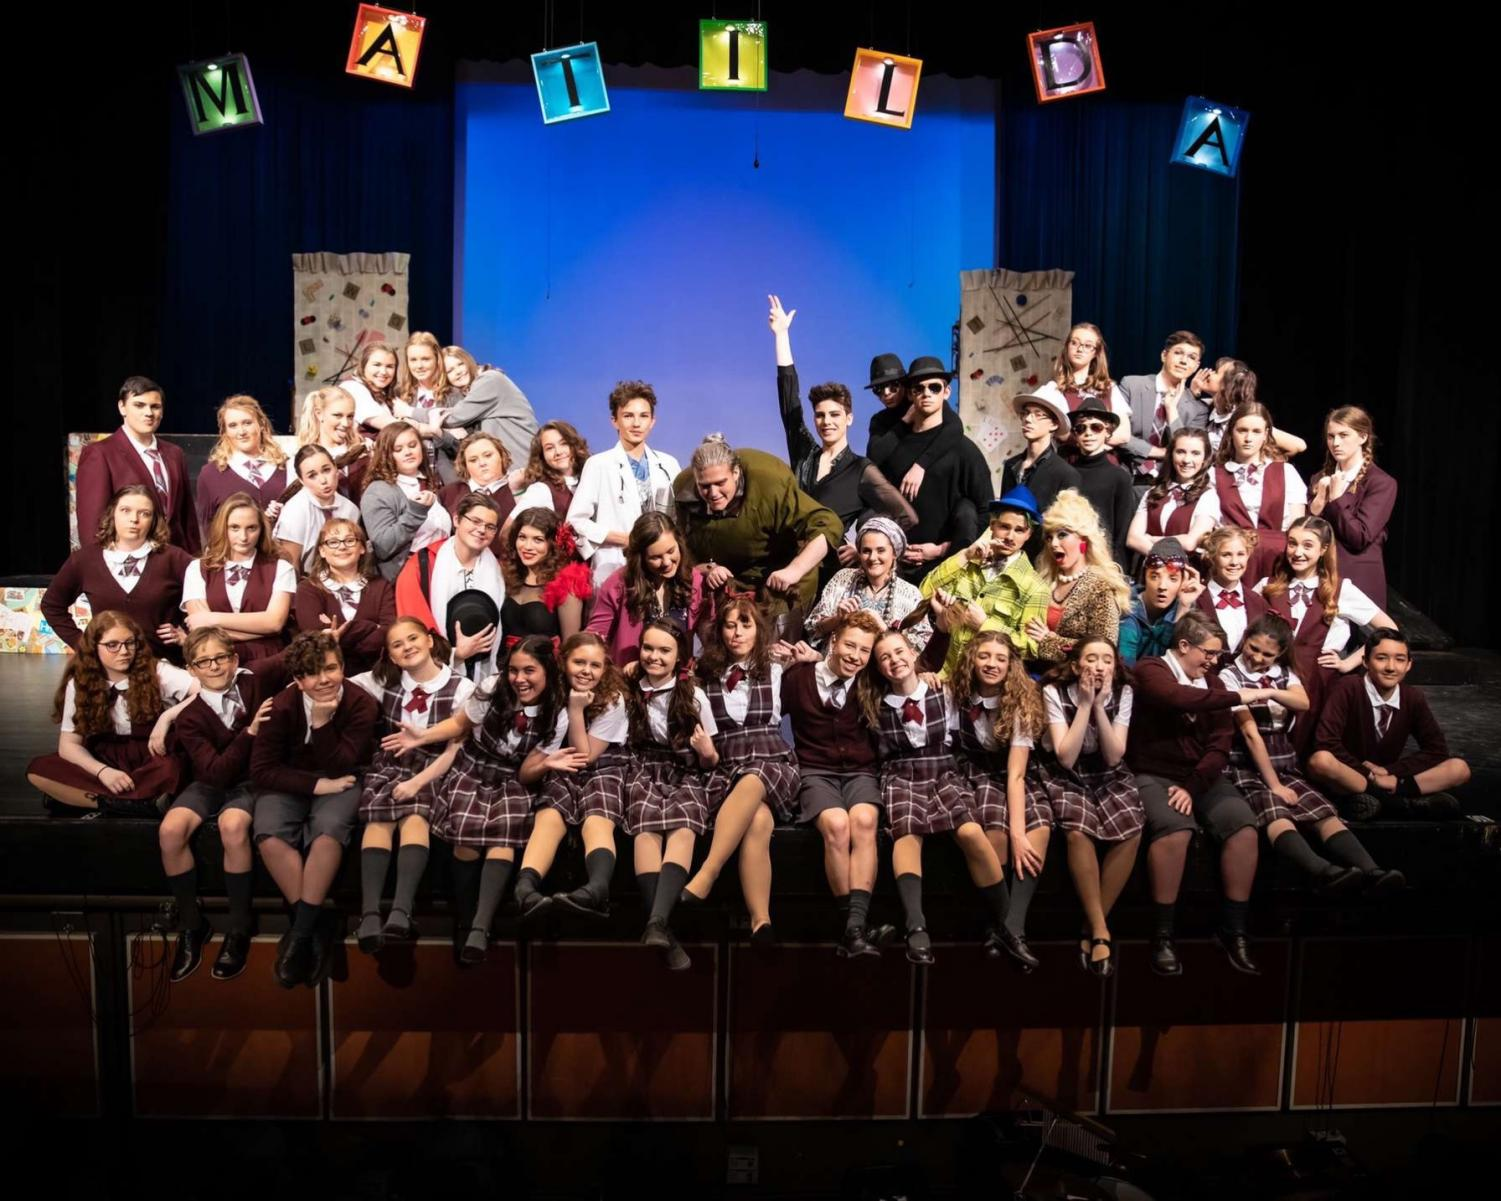 A group photo of the cast of Matilda (Photo courtesy of Tara Johnson)